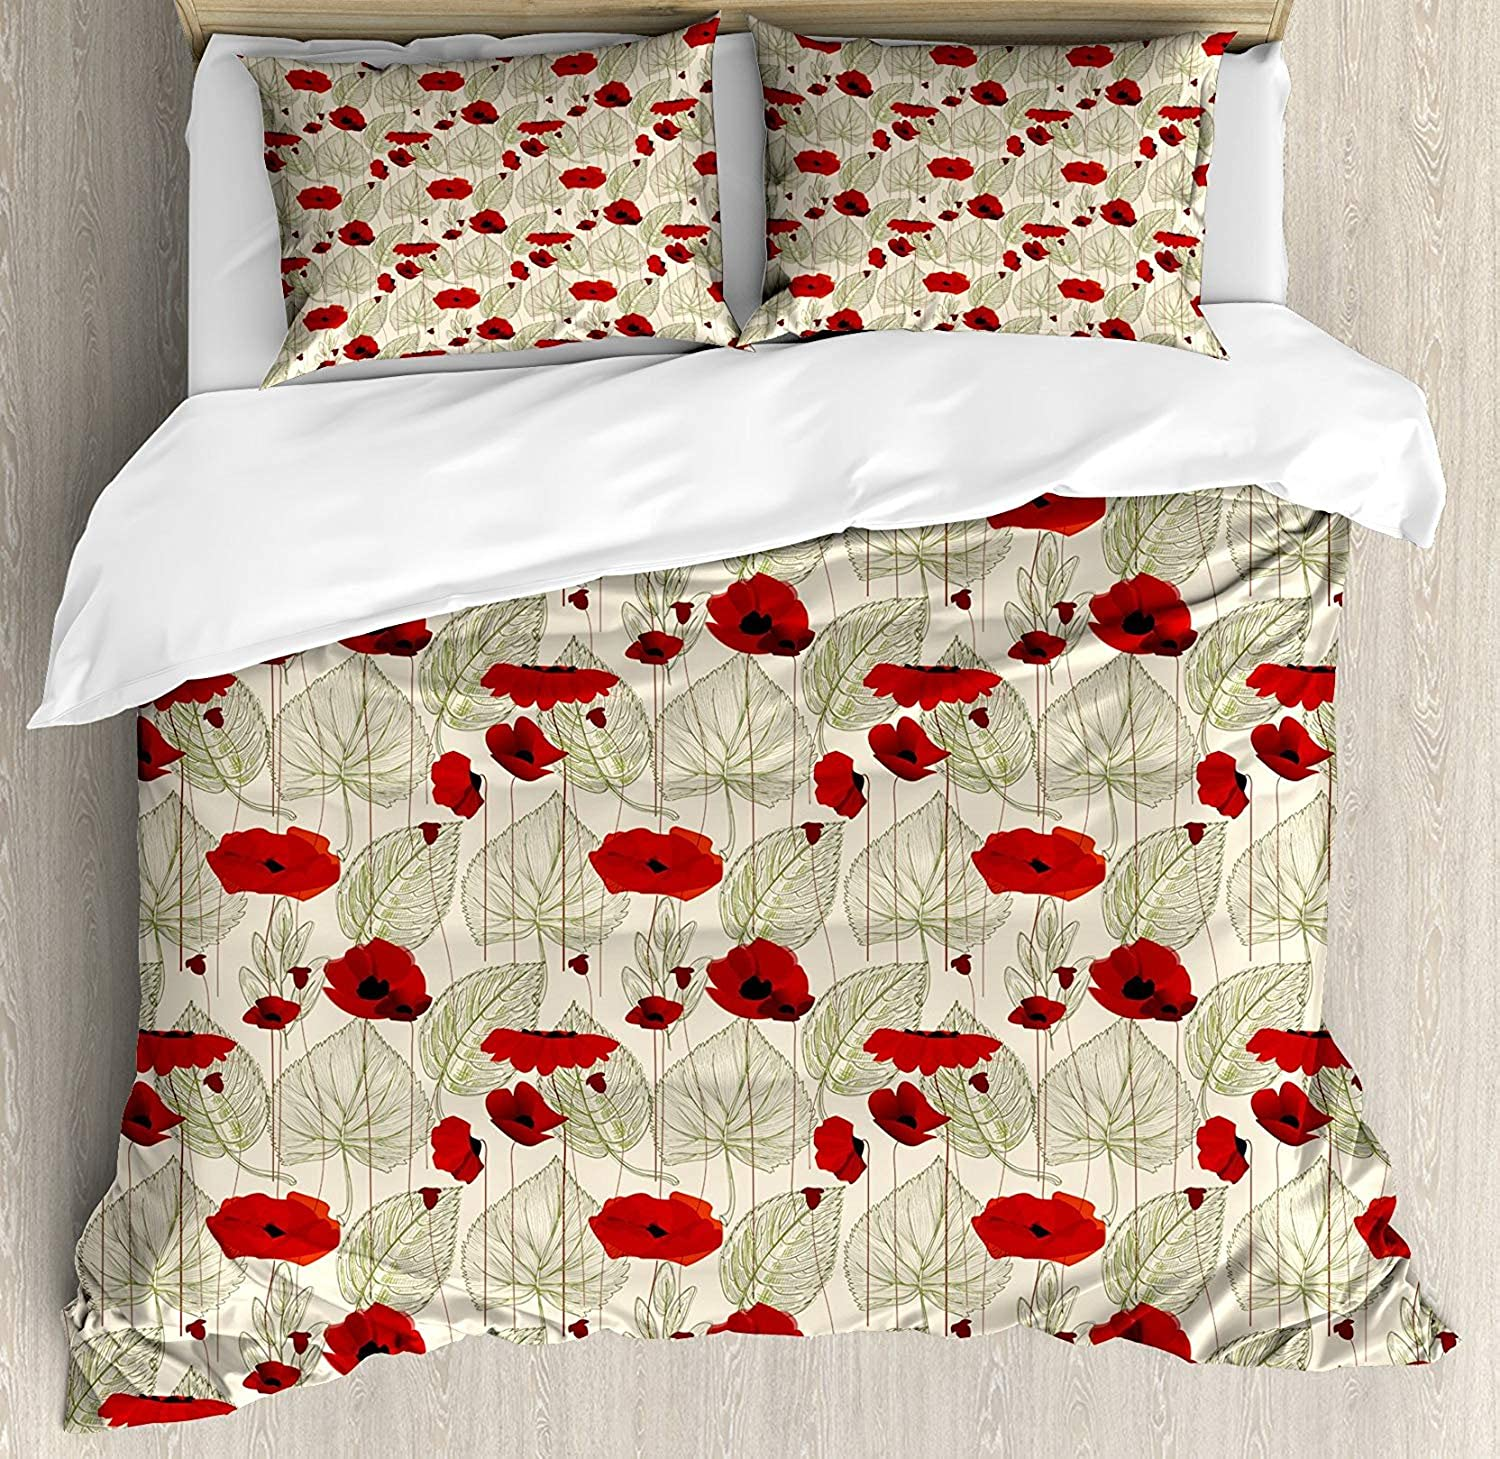 OxOHome Poppy Bedding SetsSketchy Tree Leaves Rural Floral Growth Botany Nature Inspired Art Duvet Cover Sets Scarlet Fern Green Beige Queen Bedding Comforter Cover Sets Soft Bedding Collections